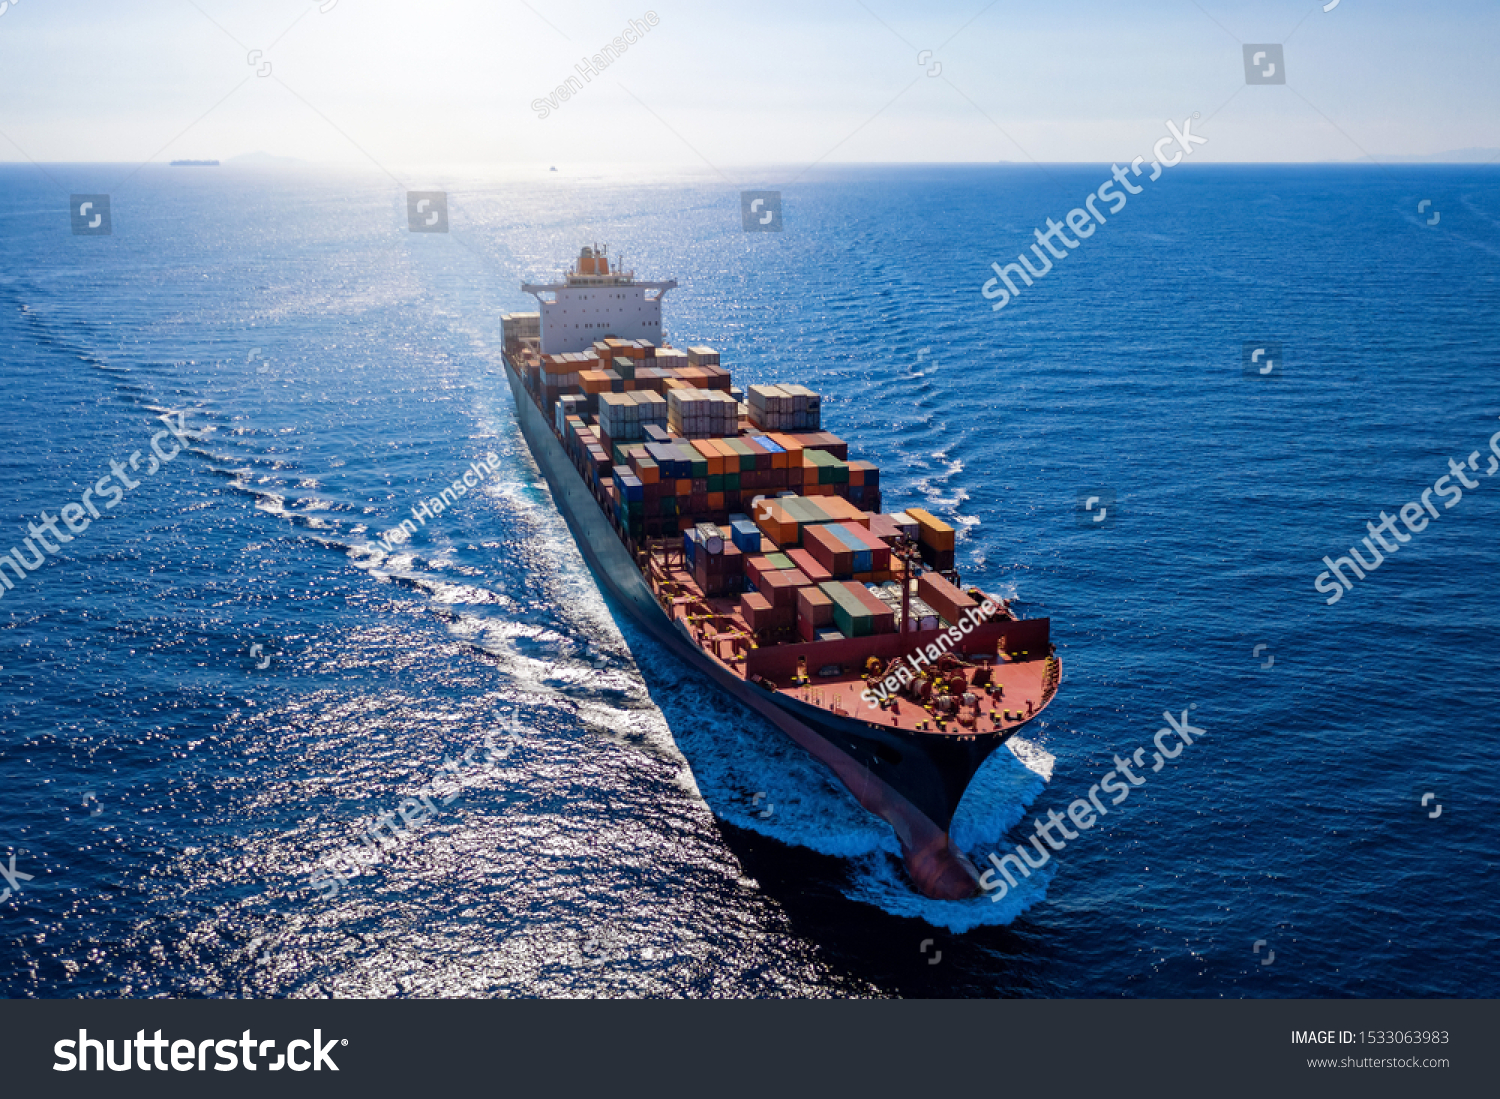 Aerial view of a heavy loaded container cargo vessel traveling in full speed over blue ocean